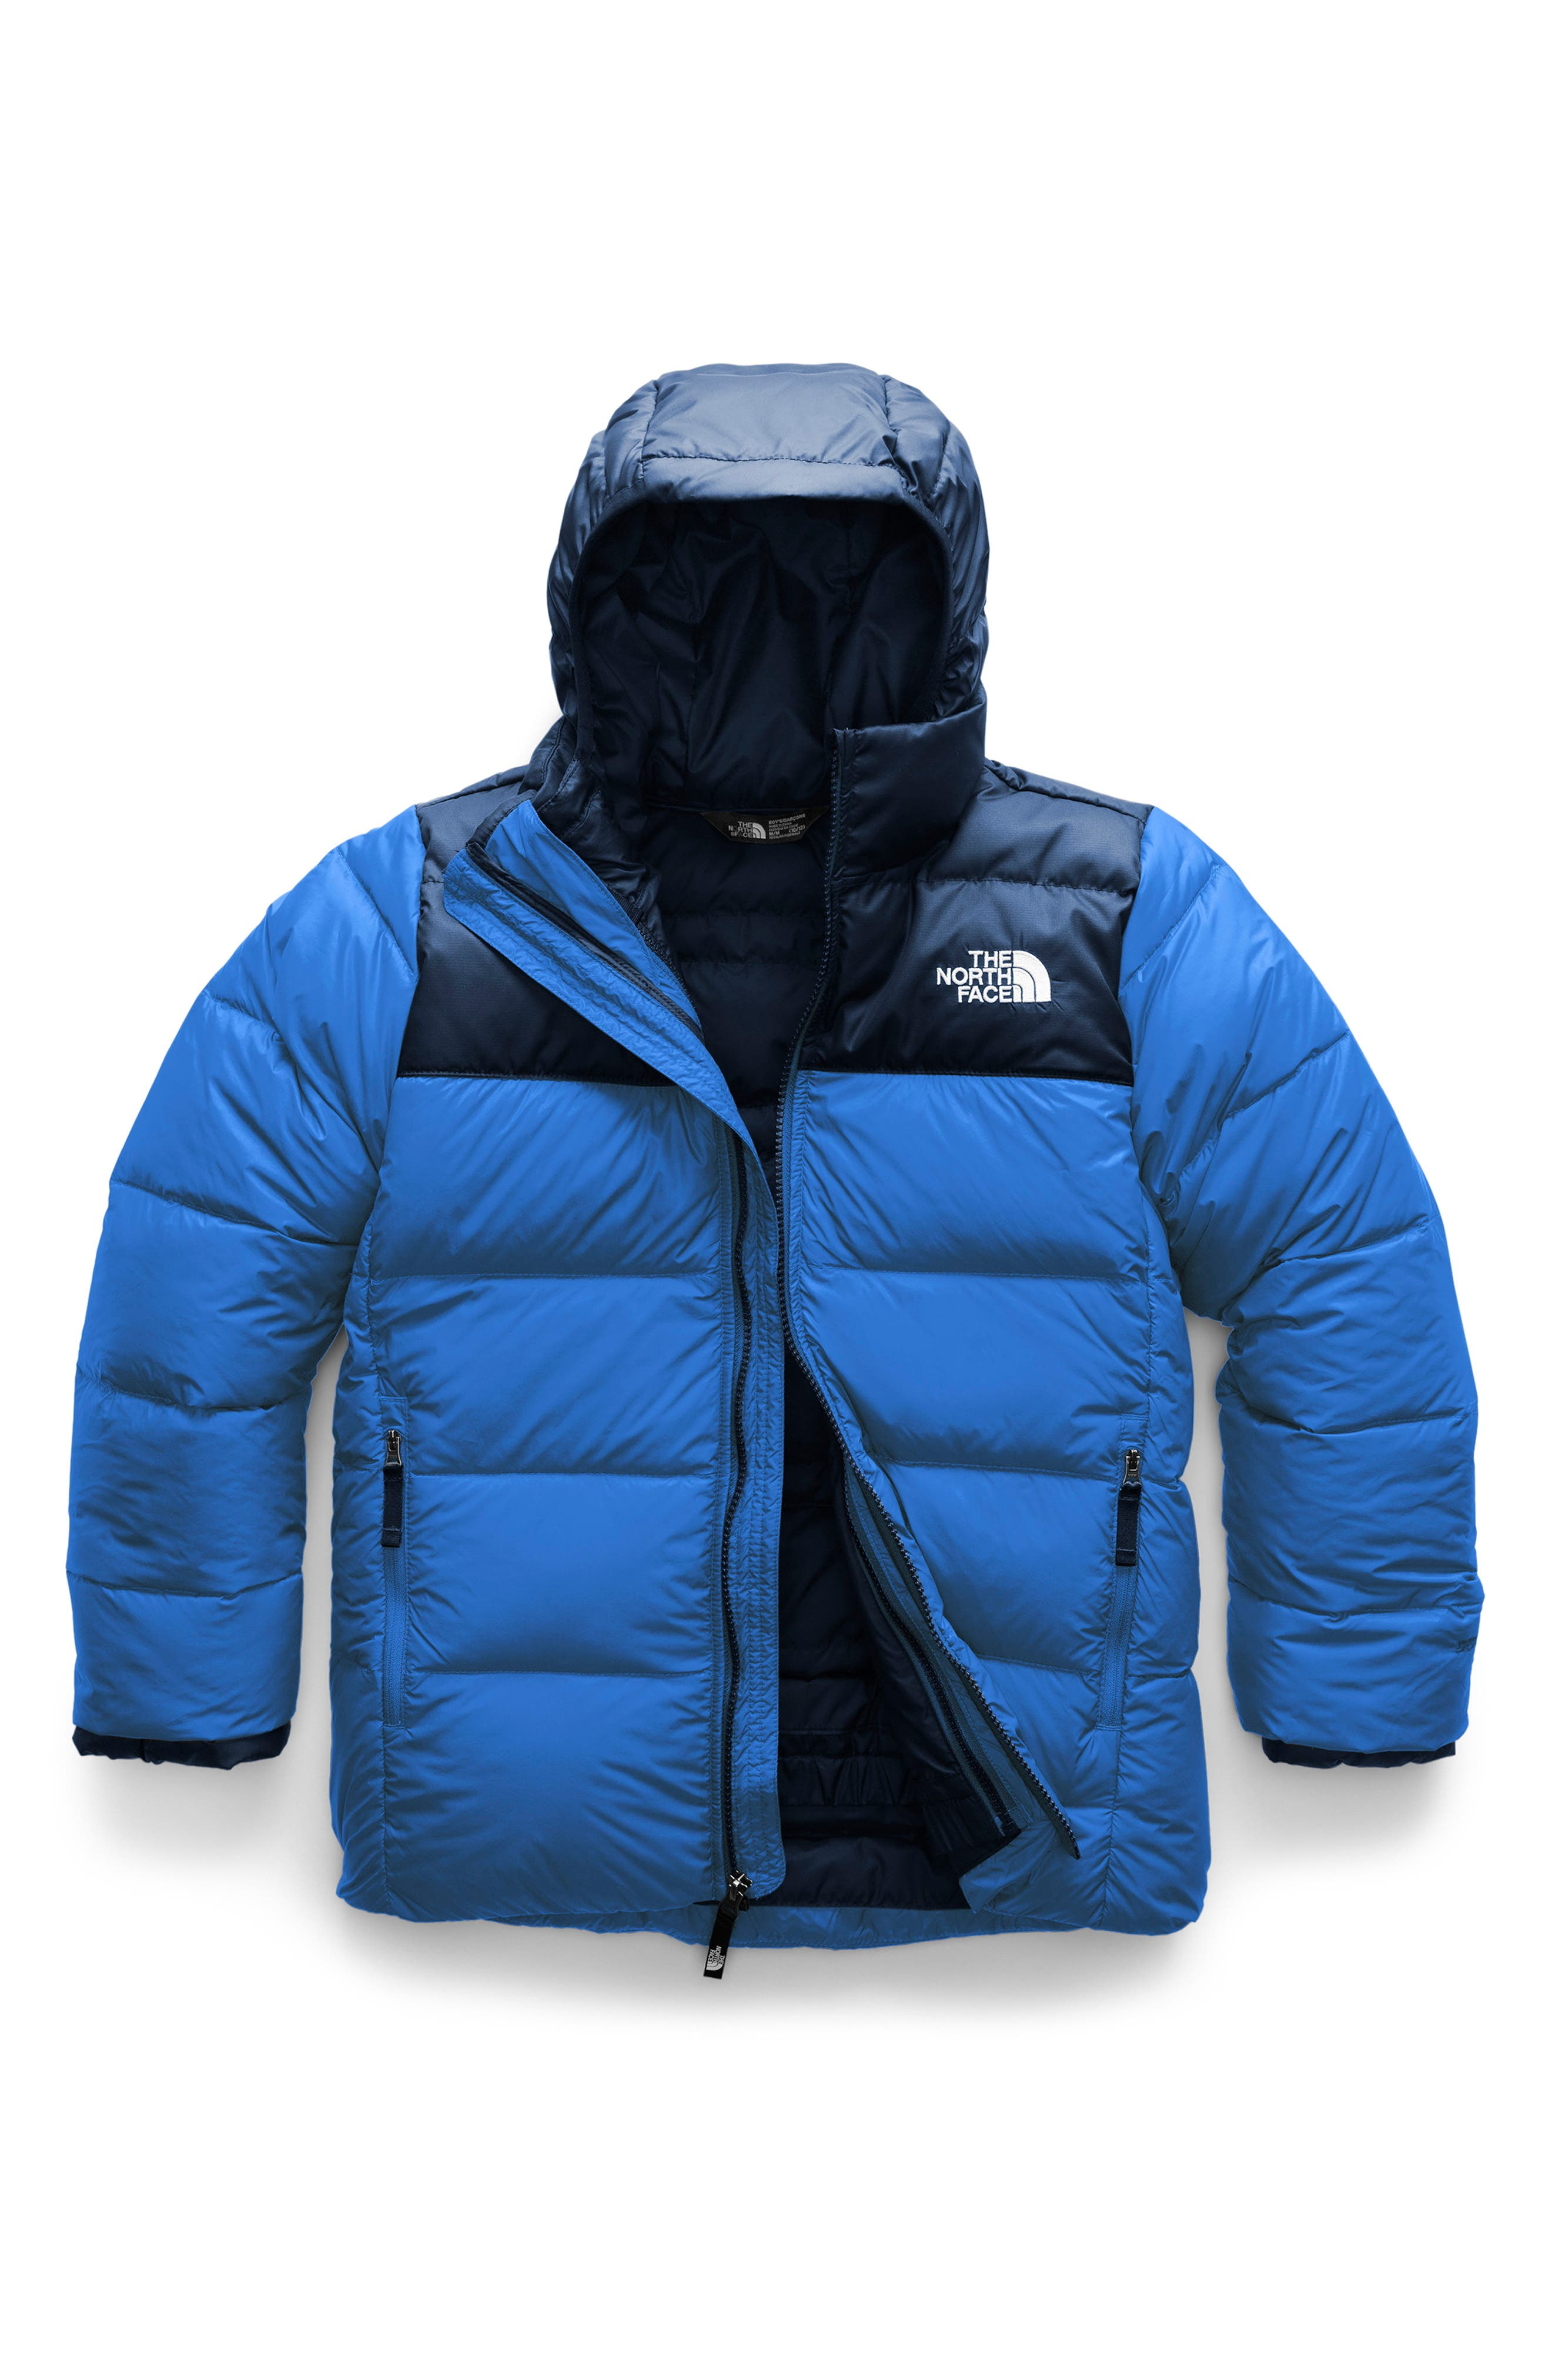 THE NORTH FACE, Double Down TriClimate<sup>®</sup> 3-in-1 Jacket, Main thumbnail 1, color, 402